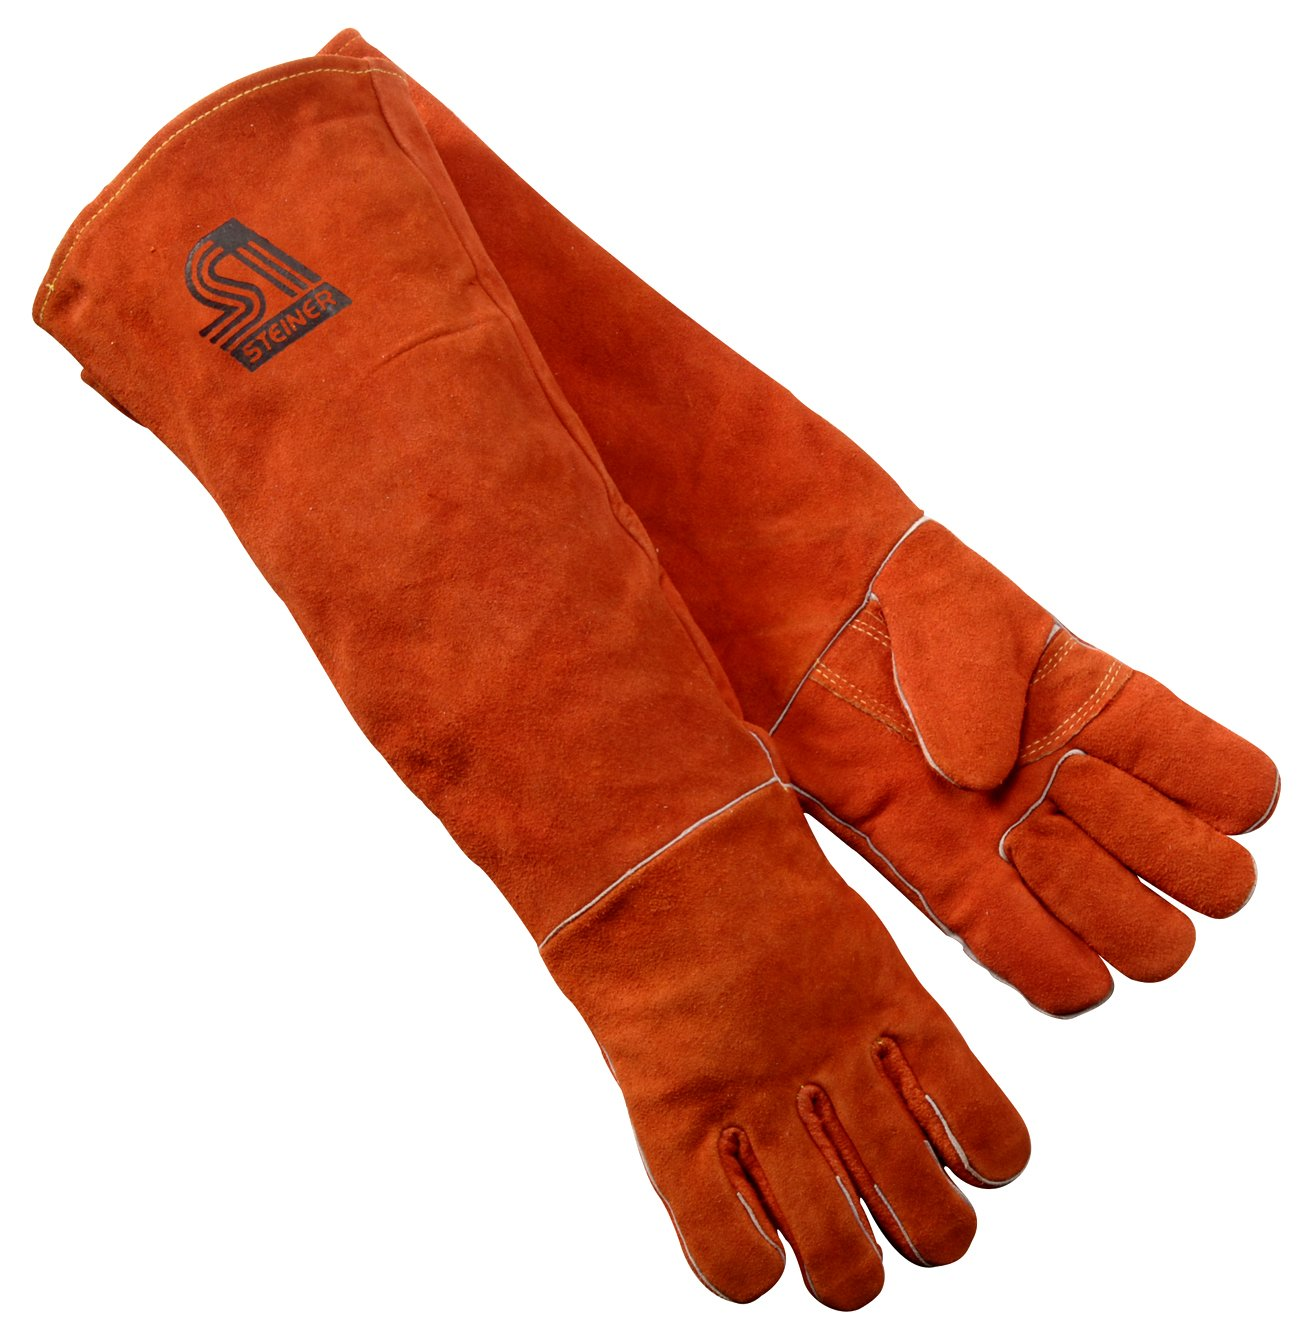 "Steiner STI-21923 Welding Gloves, Y-series, 23"" Shoulder Split Cowhide, Foam Lined, Burnt Orange"